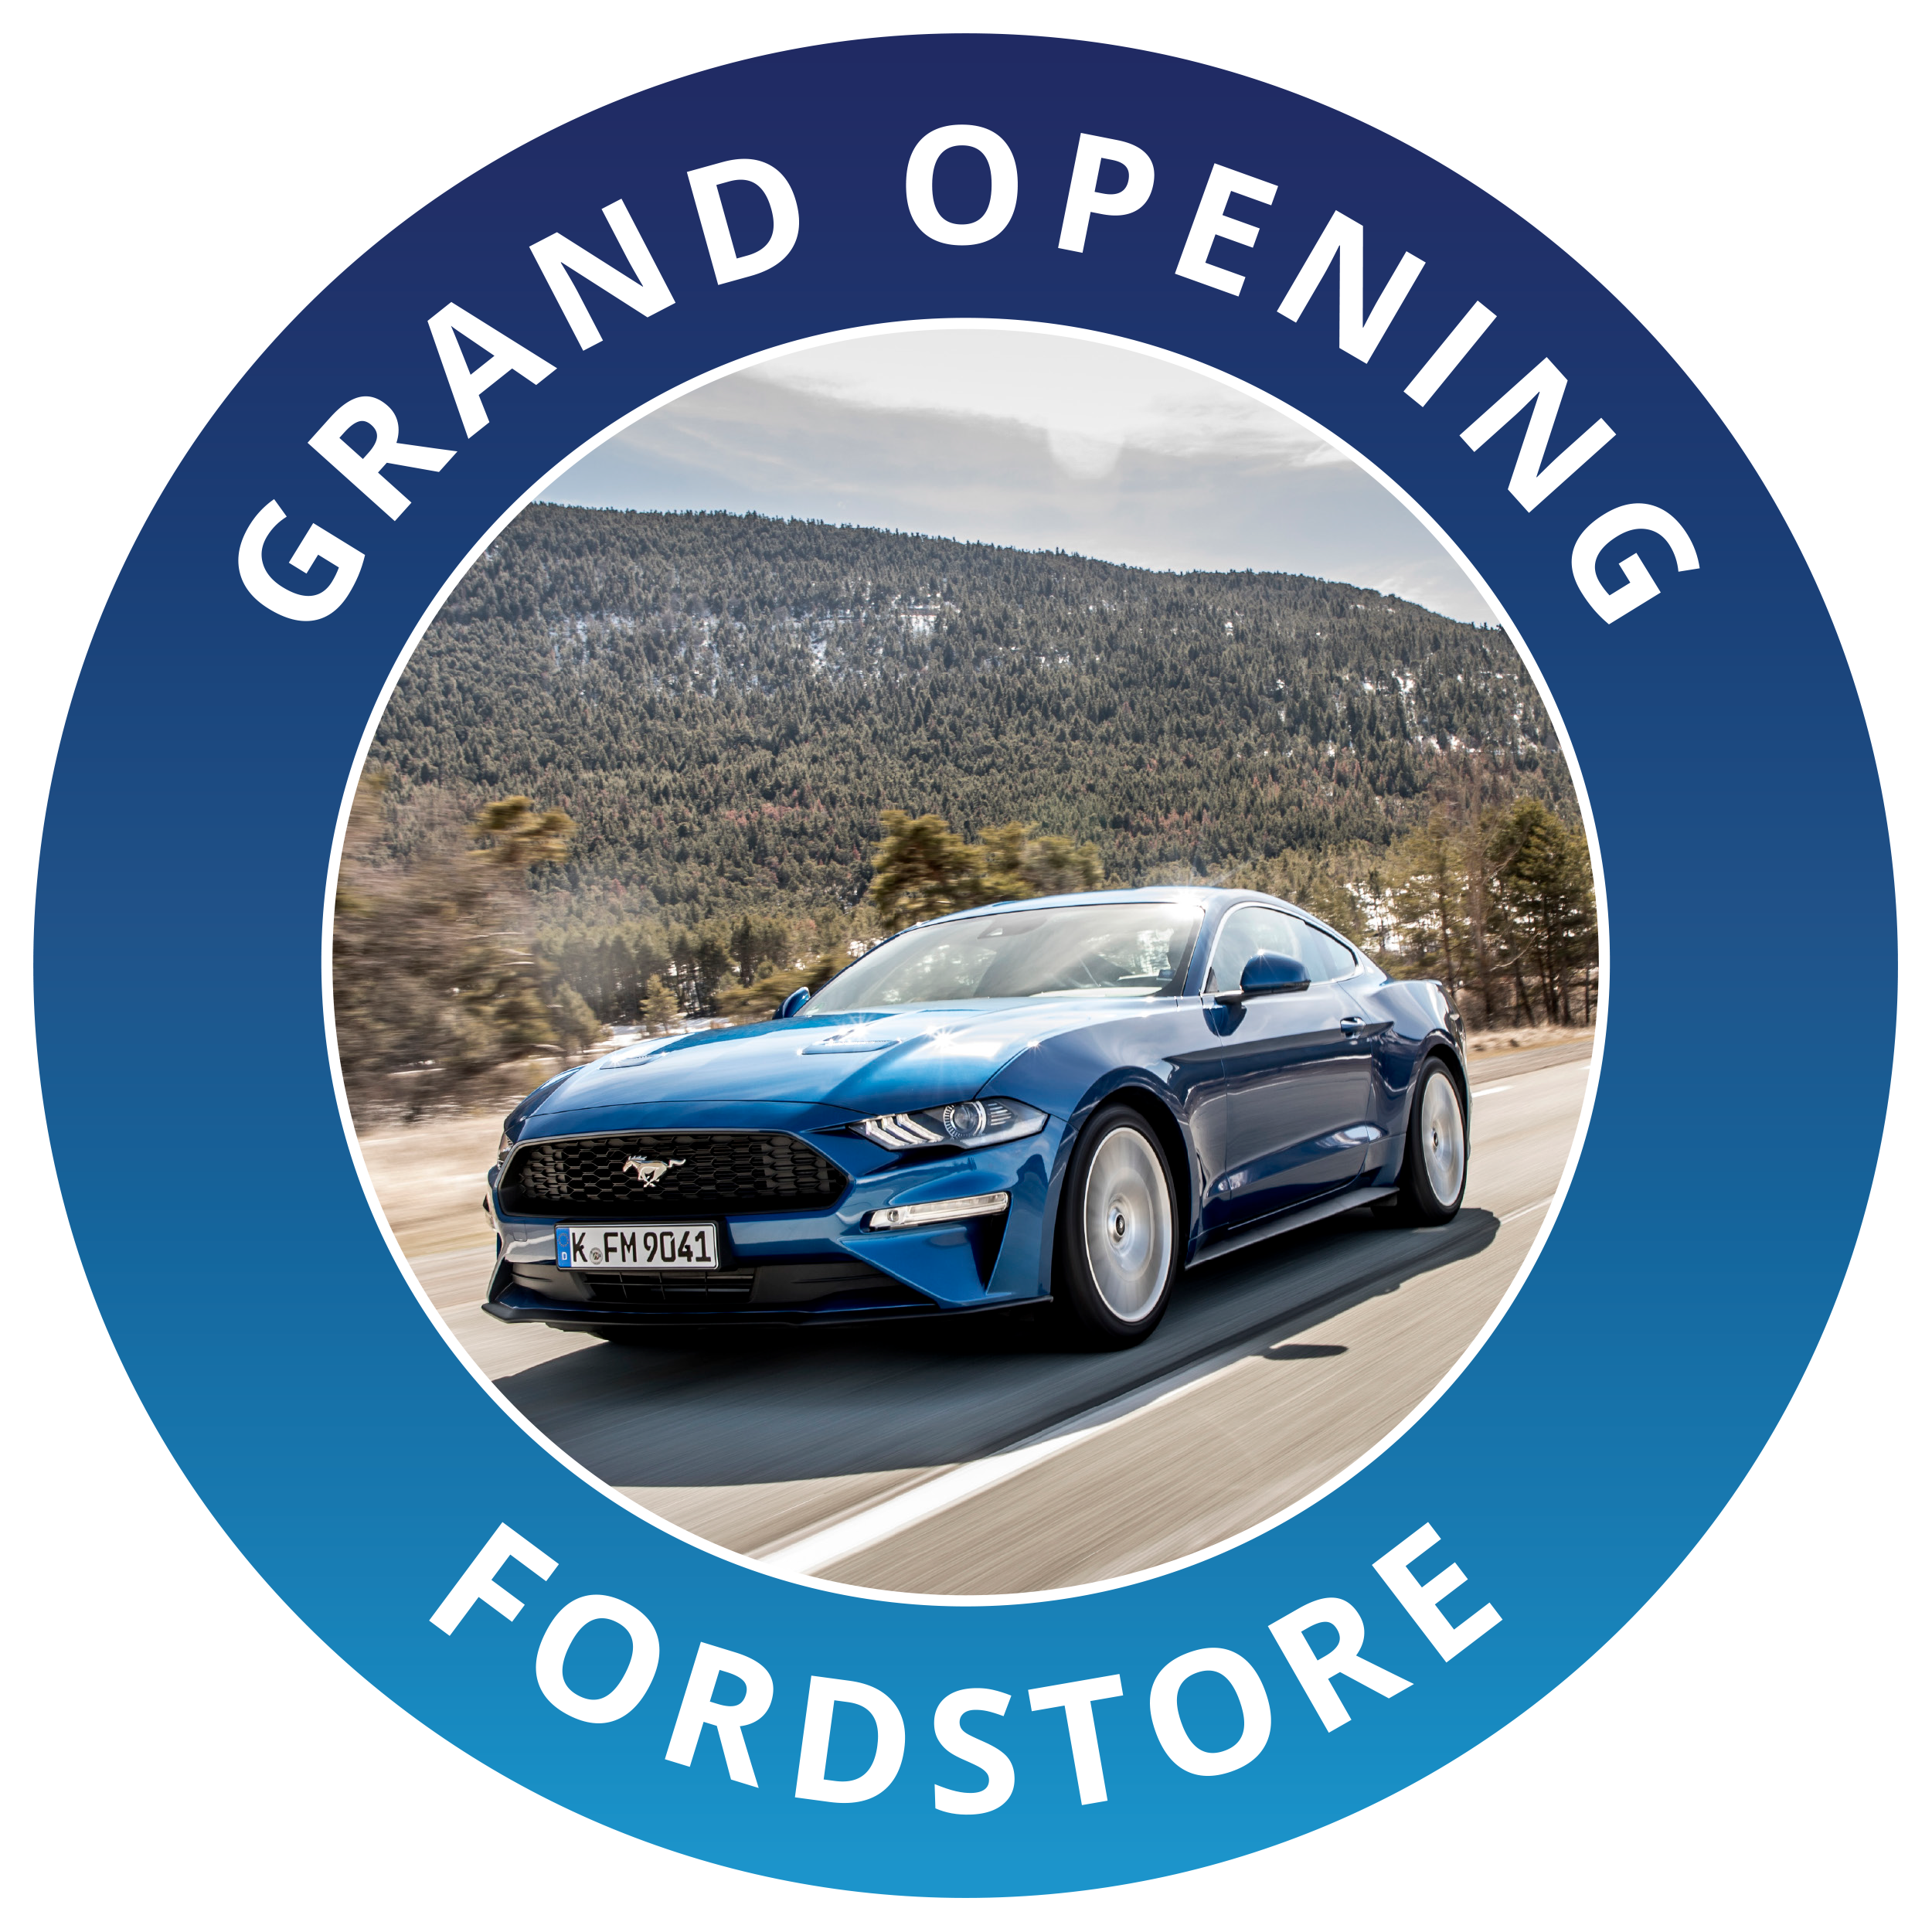 Grand Opening Fordstore Haninge 5-7 april